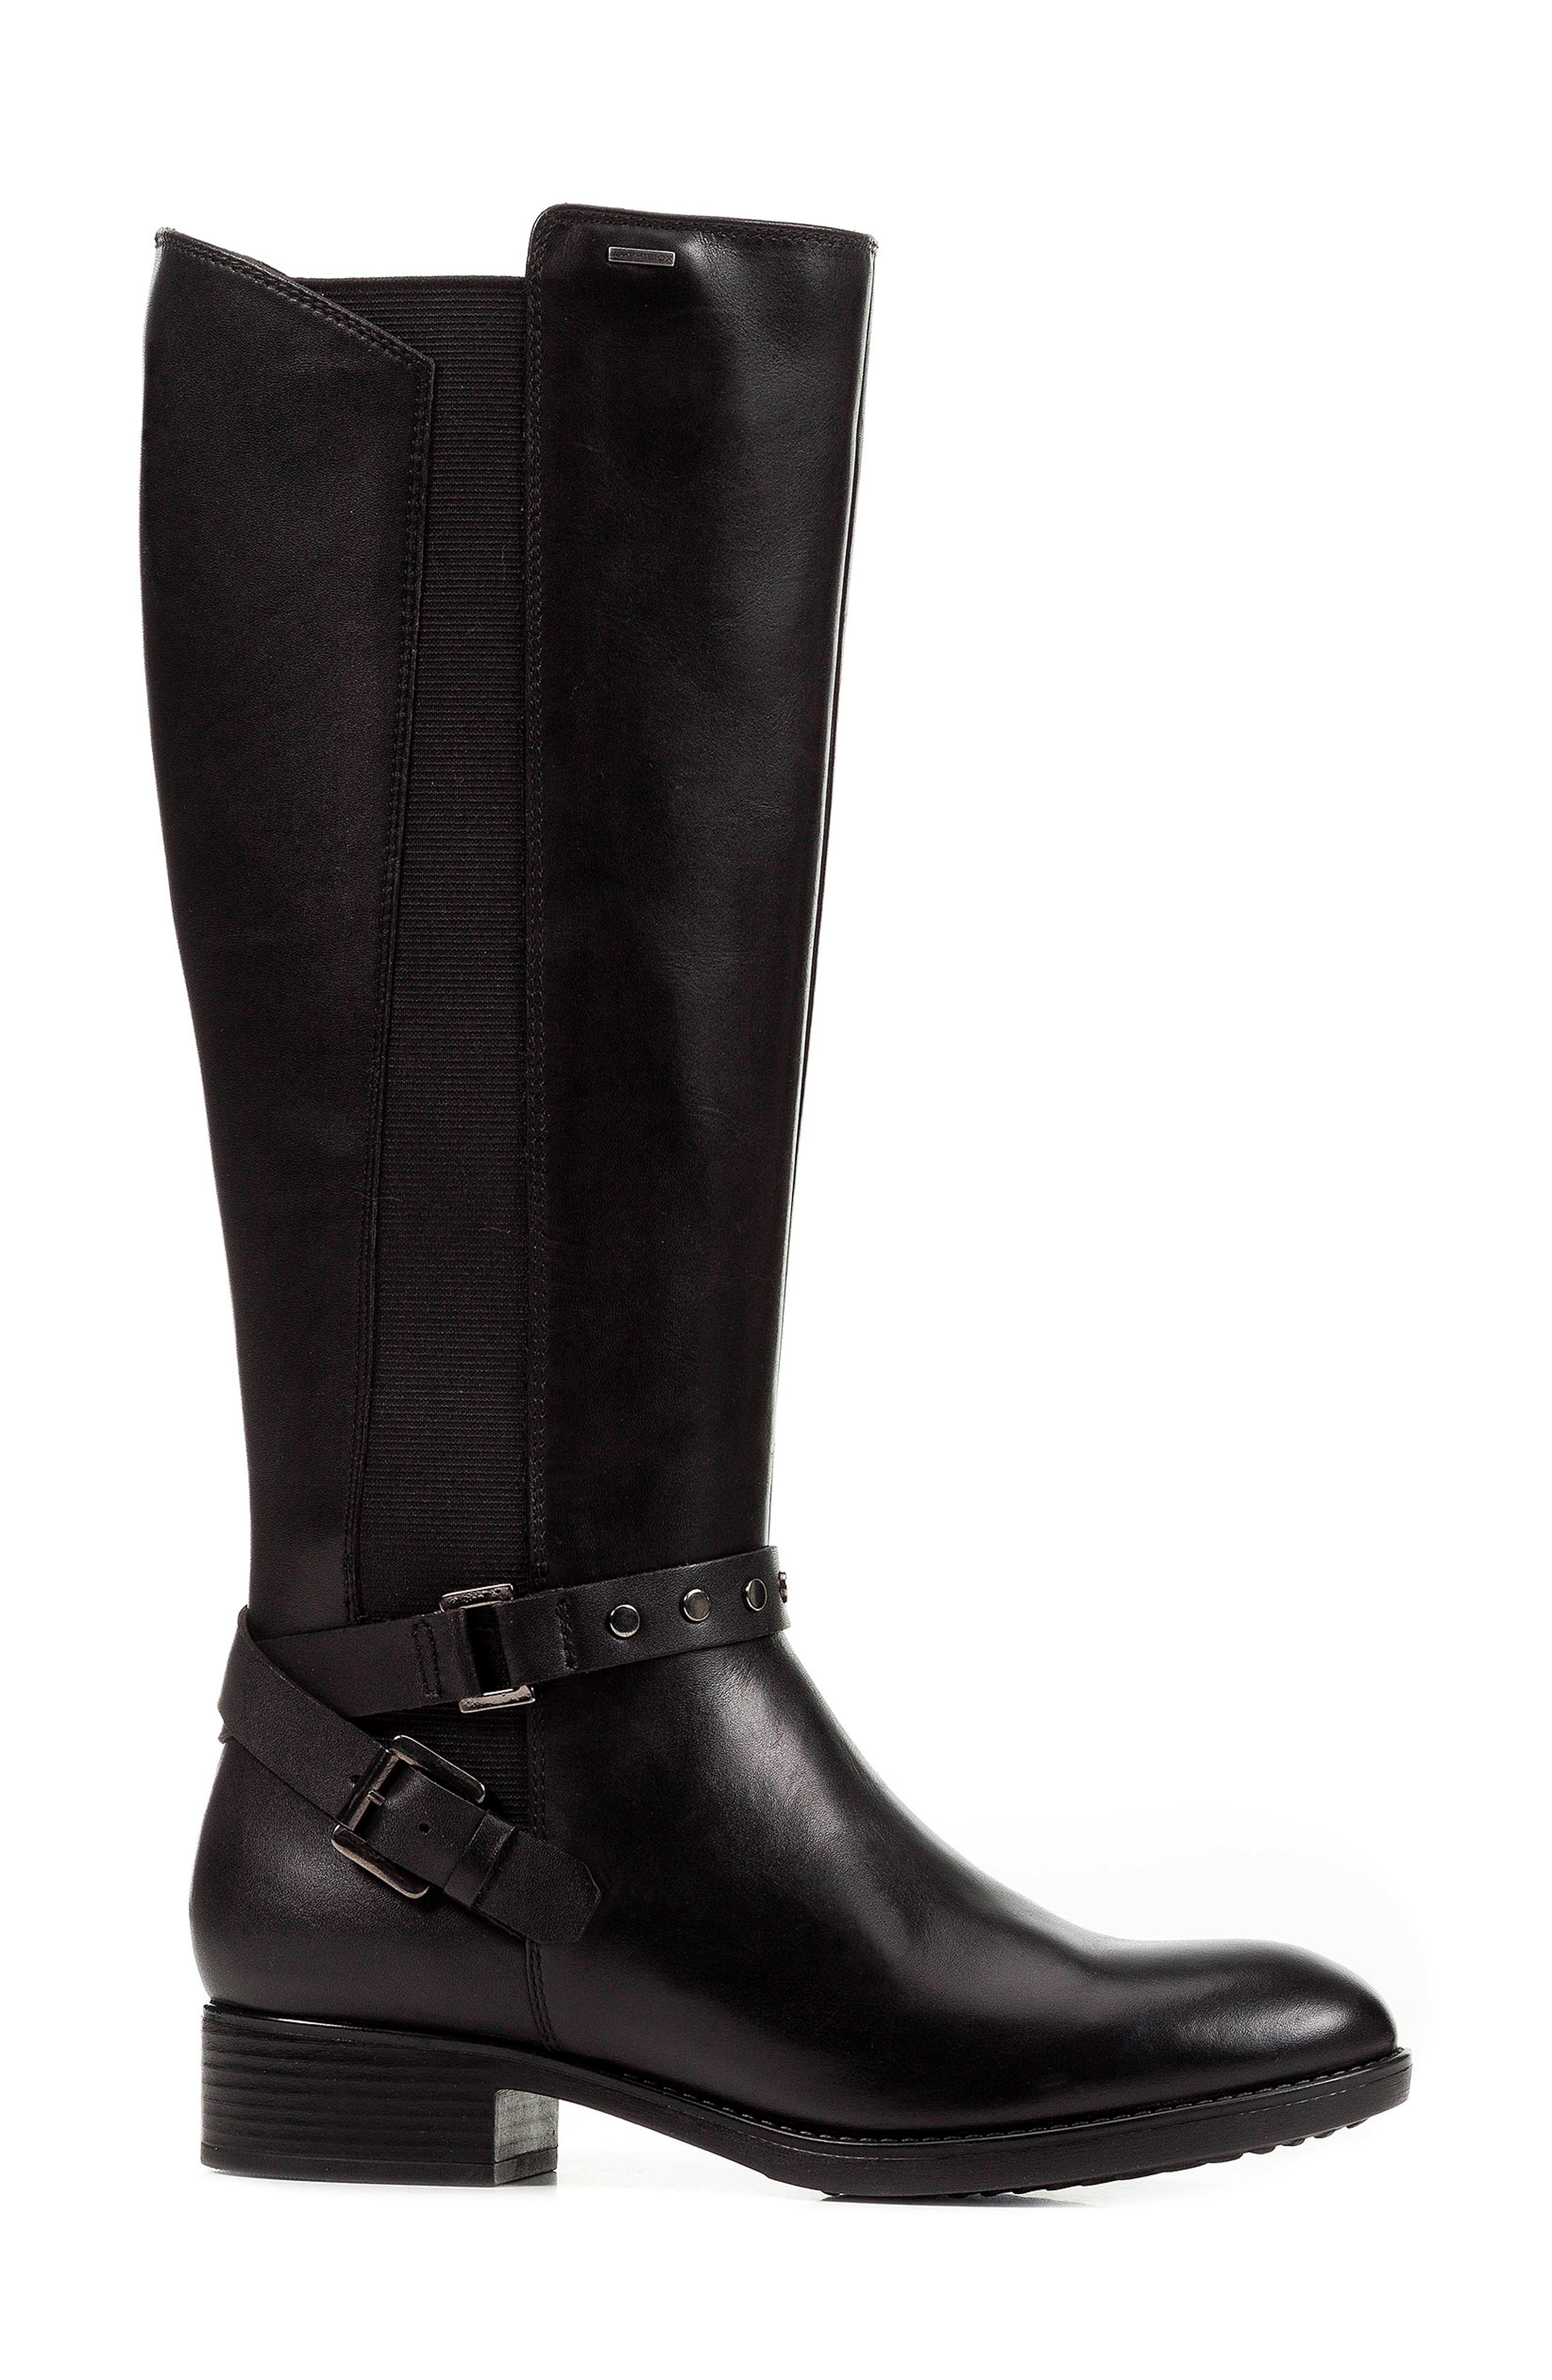 Felicity ABX Waterproof Knee High Riding Boot,                             Alternate thumbnail 3, color,                             BLACK LEATHER